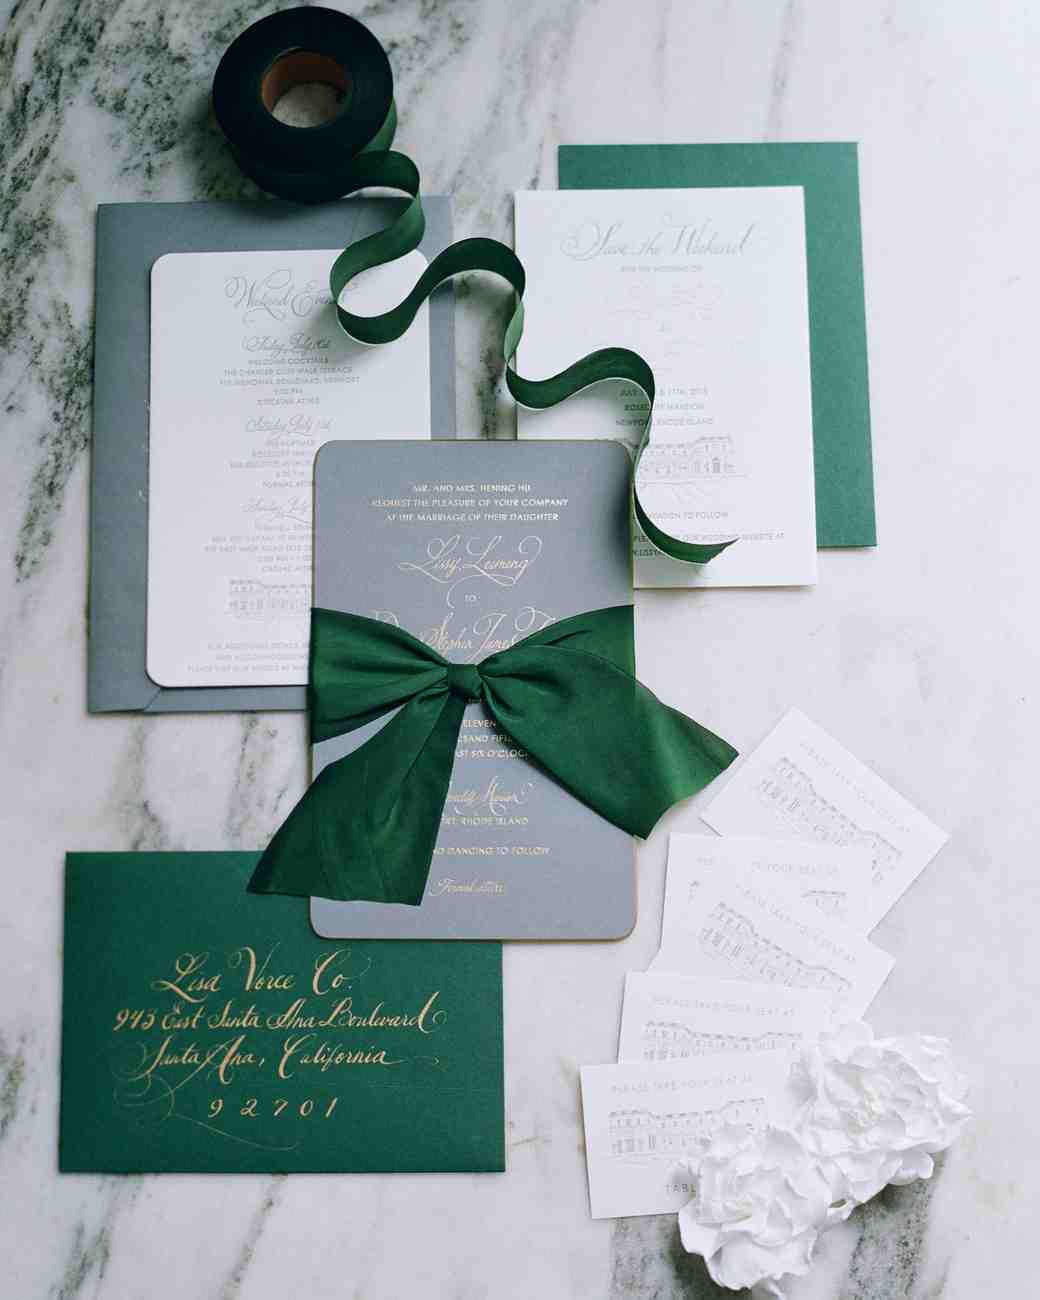 Green and gold metallic invitations